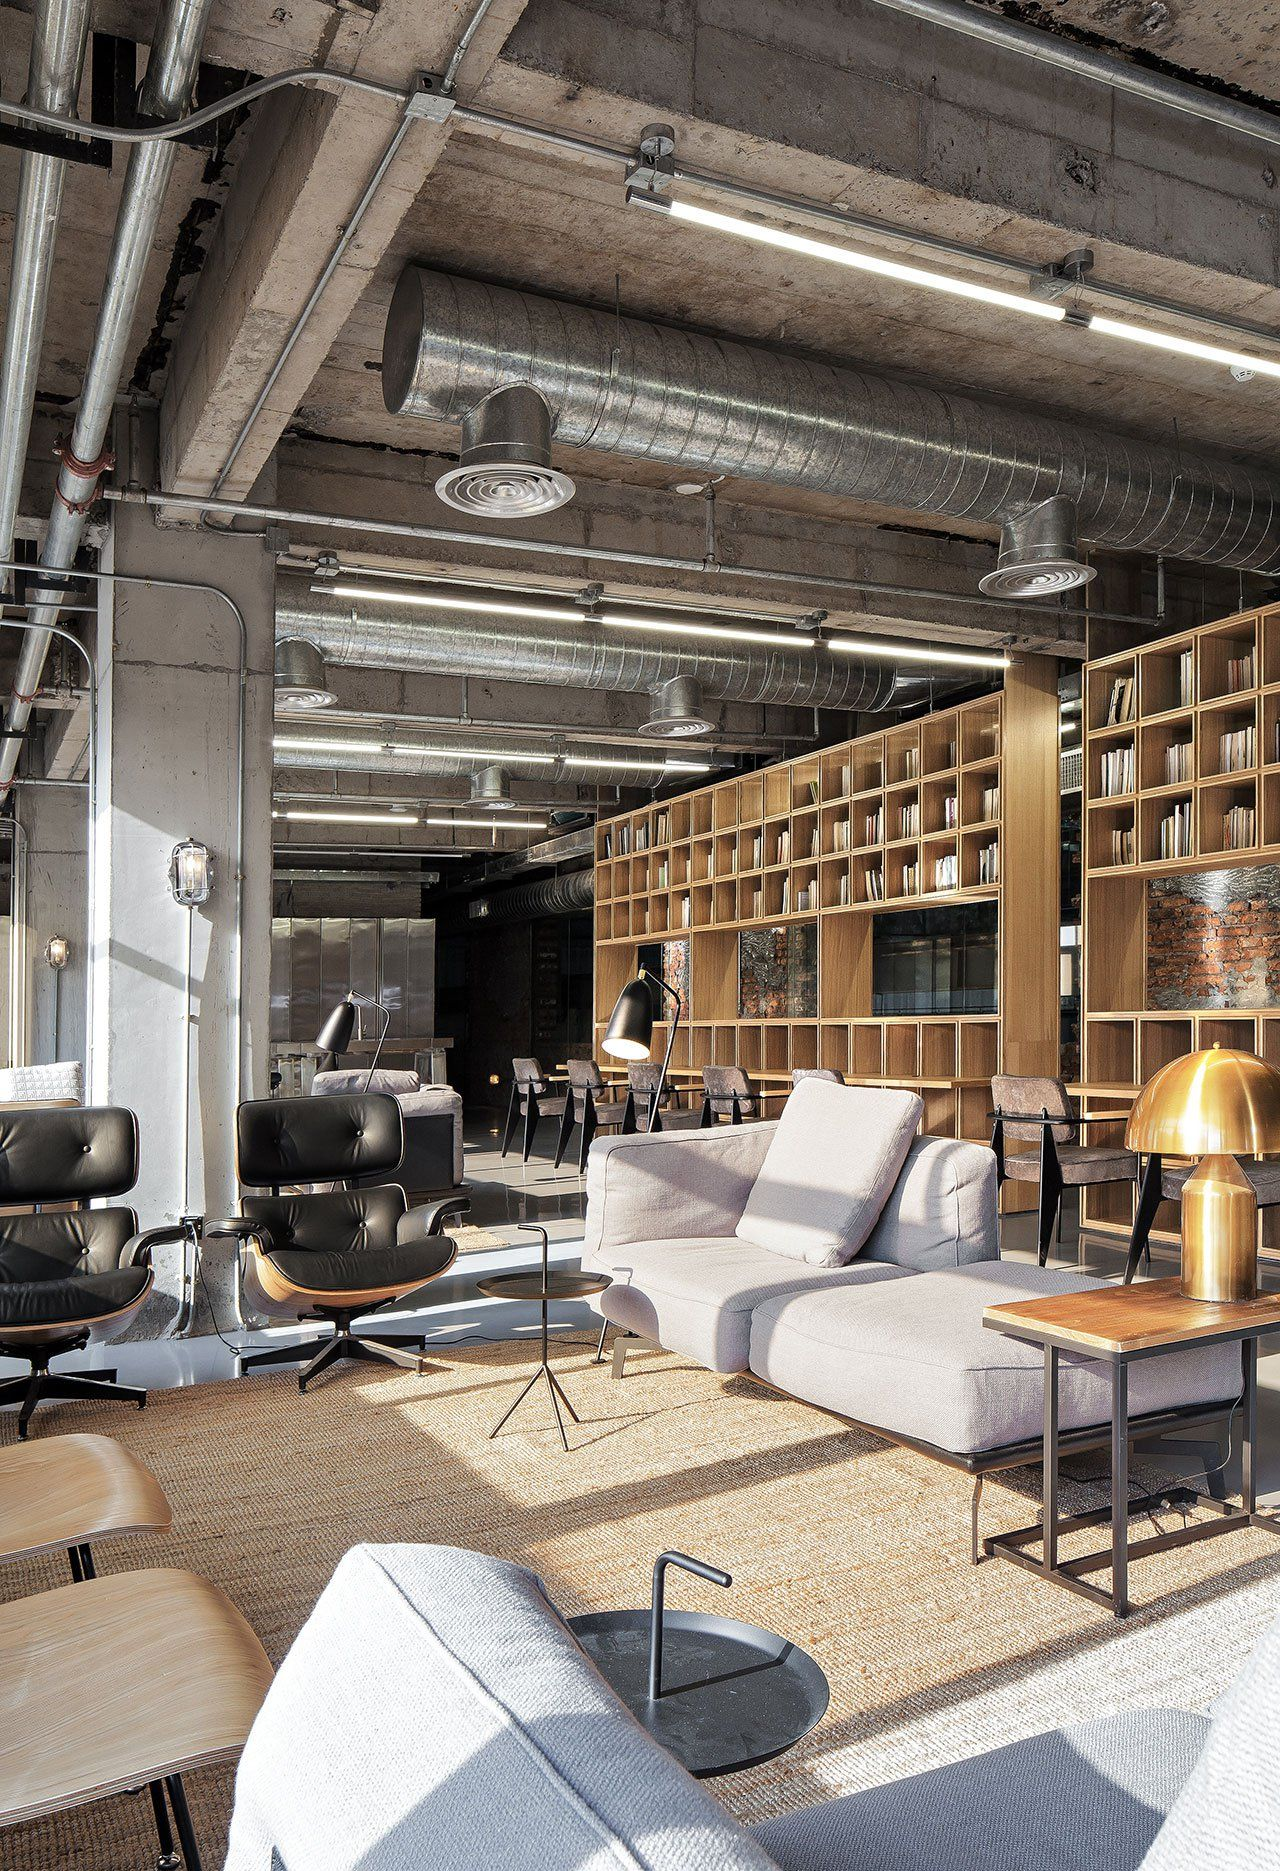 office building design ideas amazing manufactory. FlaHalo Office Manufactory Renovation By Narration. Building Design Ideas Amazing Y